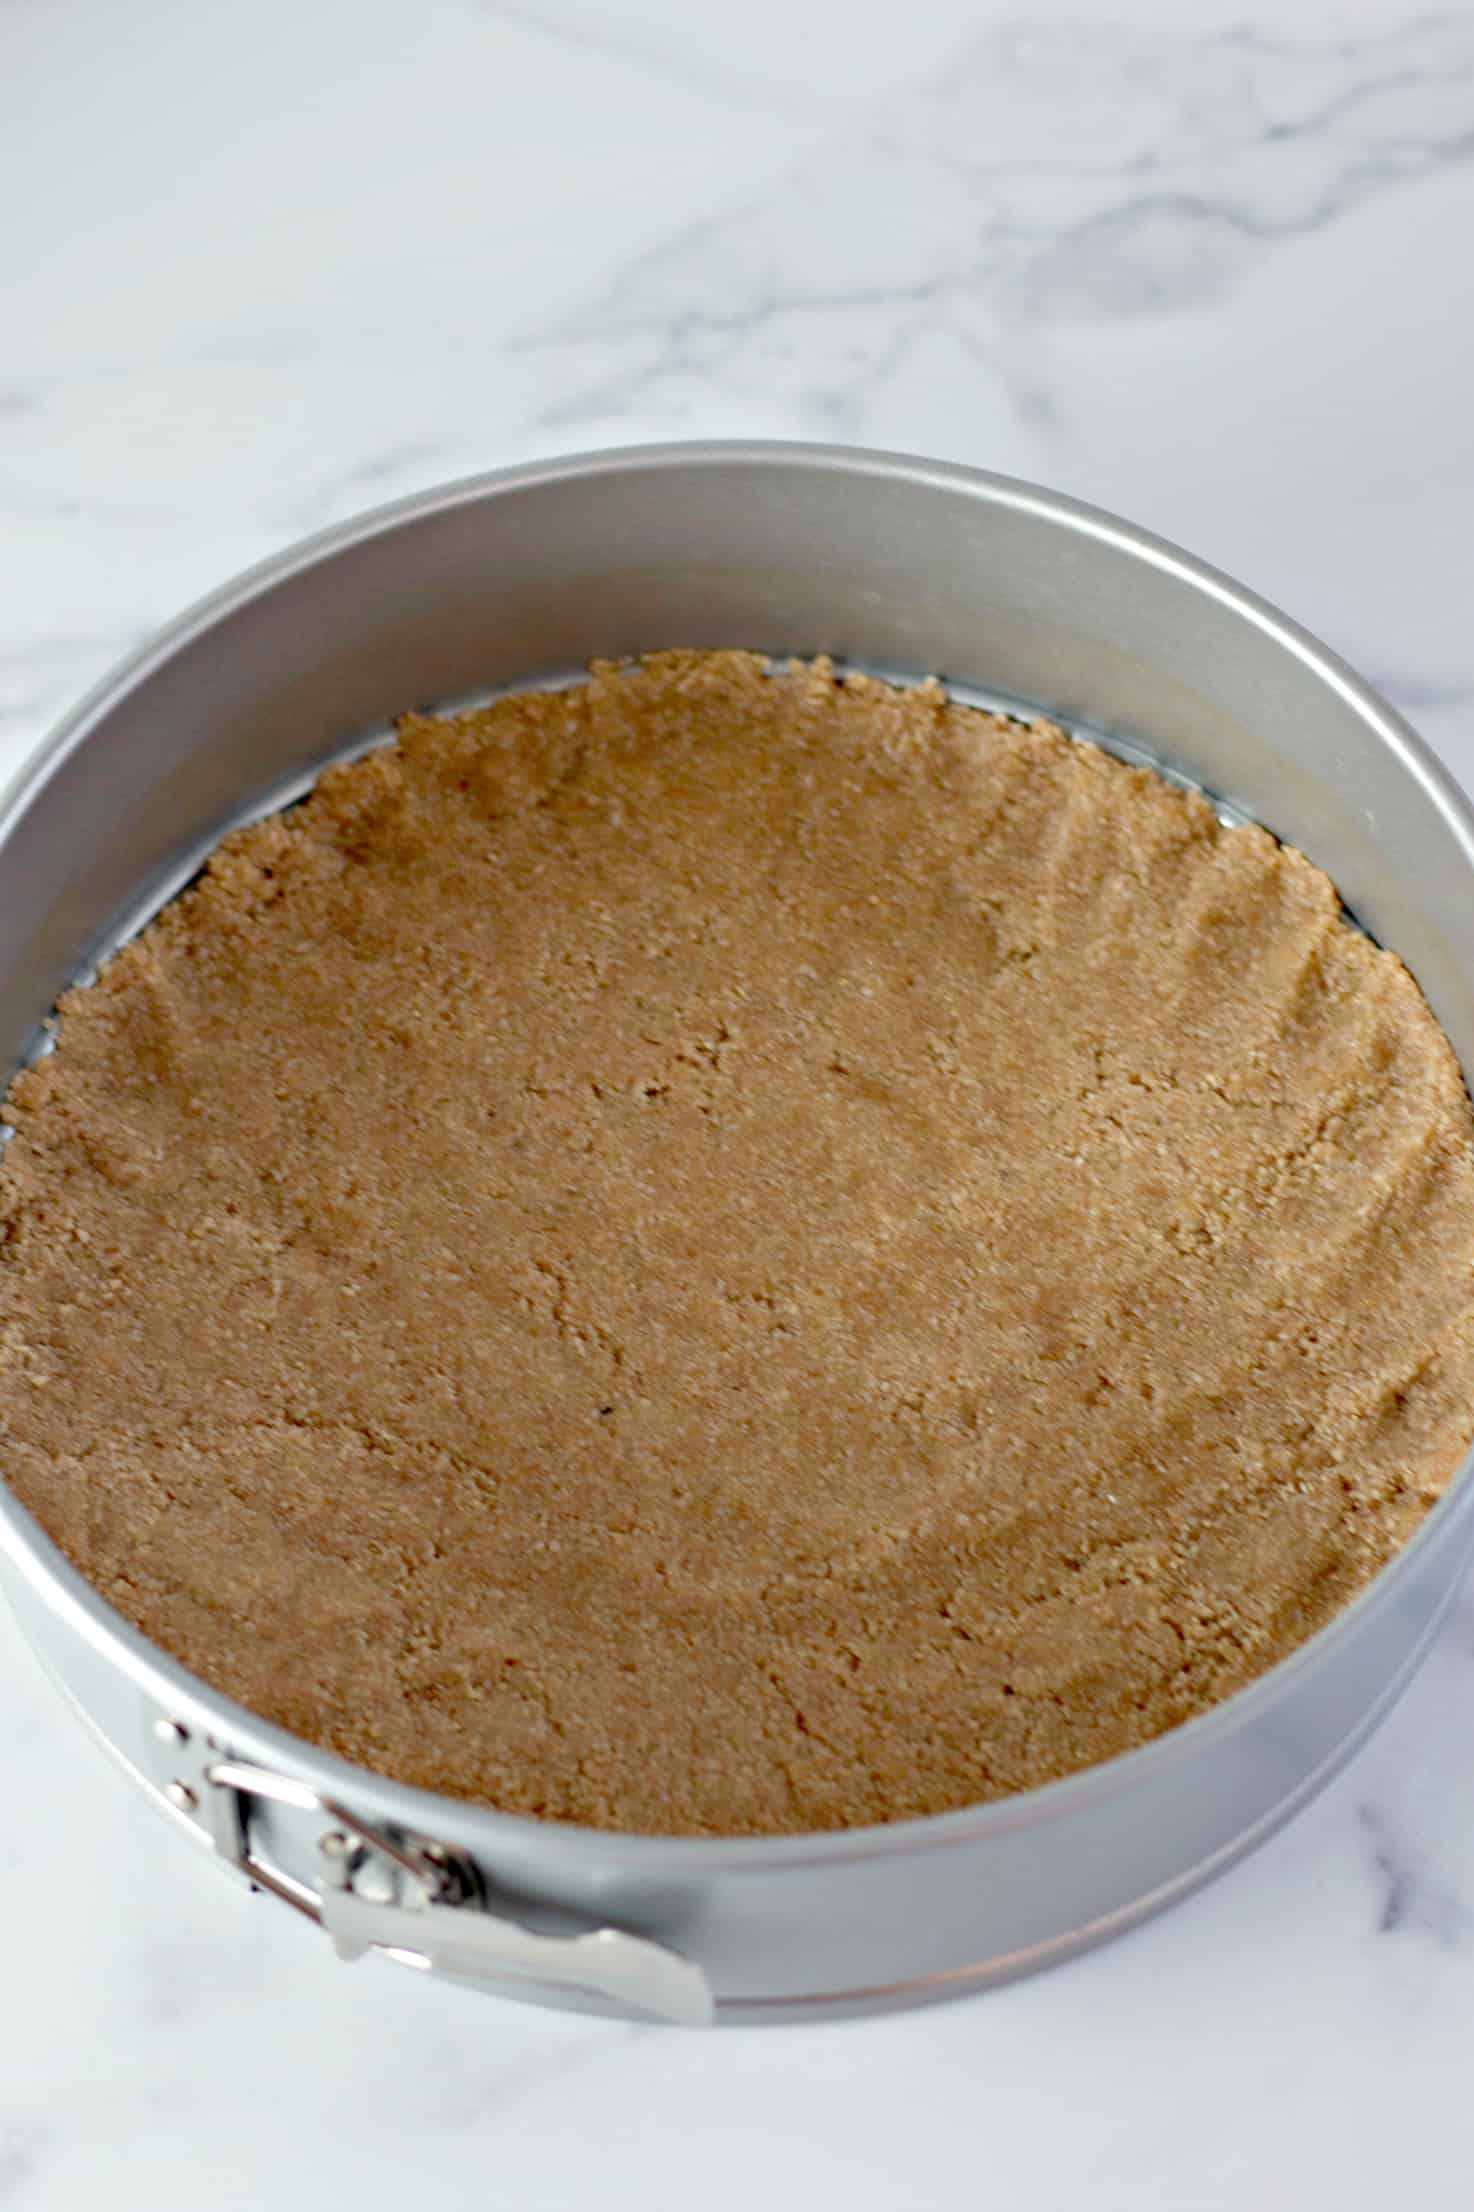 Crust in the springform pan for keto pumpkin cheesecake